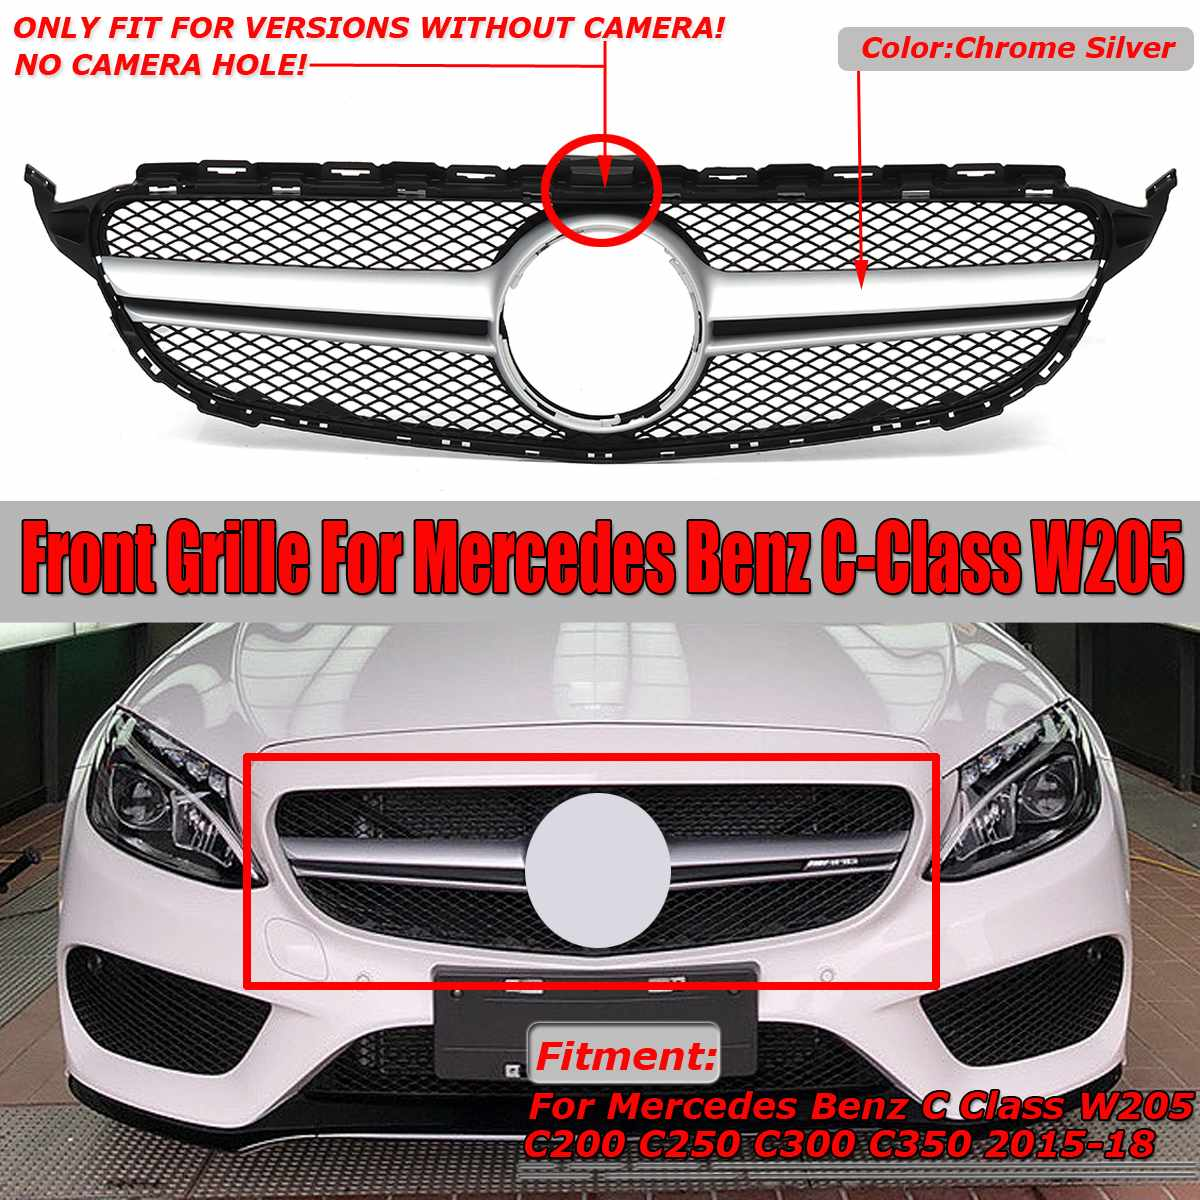 For AMG Style Chrome Silver Car Front Grille Grill For Mercedes For Benz C Class W205 C200 C250 C300 C350 2015-2018For AMG Style Chrome Silver Car Front Grille Grill For Mercedes For Benz C Class W205 C200 C250 C300 C350 2015-2018